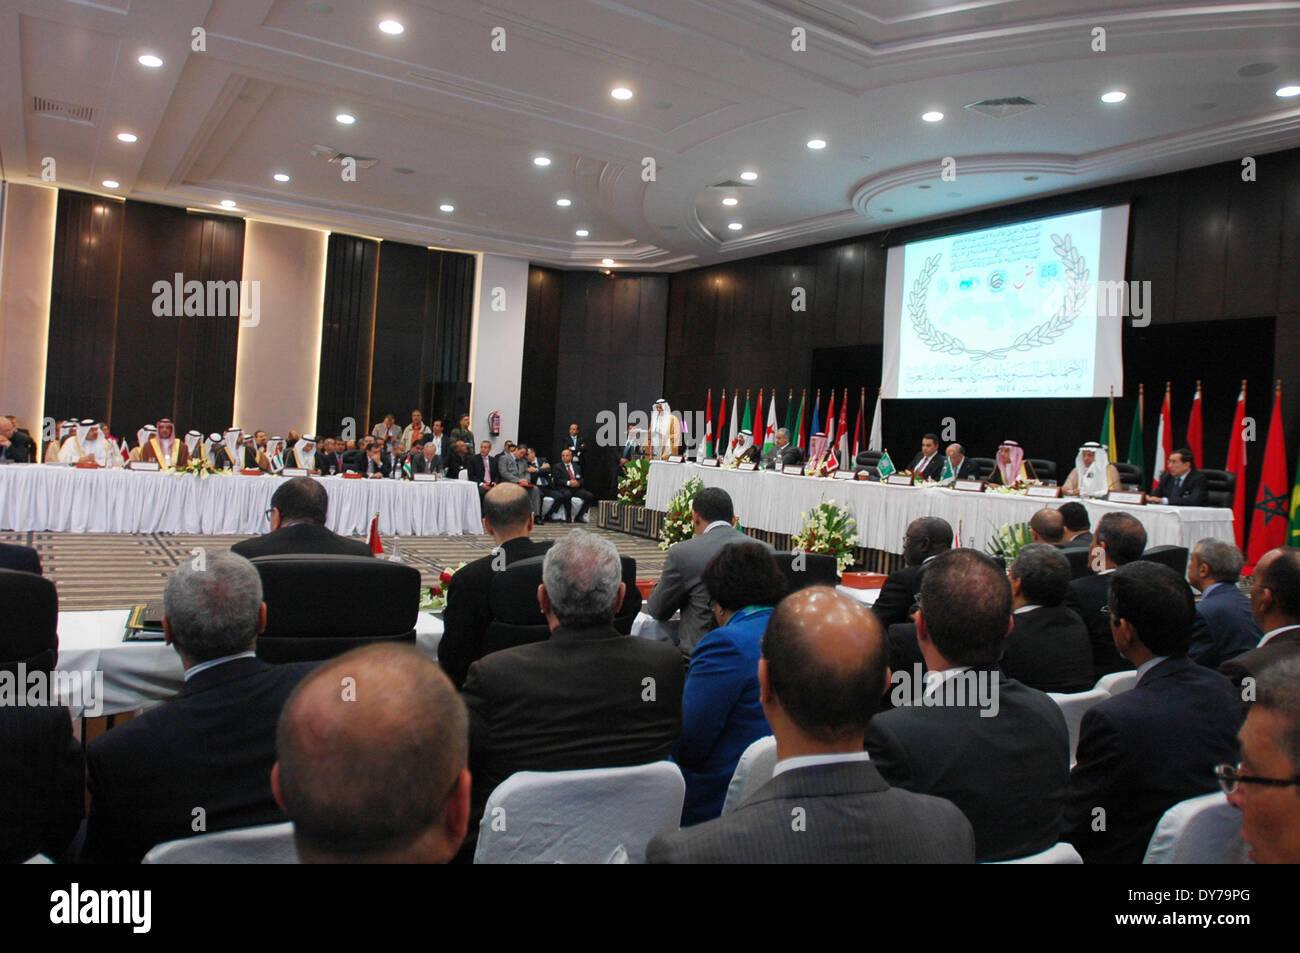 Tunis. 8th Apr, 2014. The opening ceremony of the forum of Arab financial institutions is held in Tunis, Tunisia, Stock Photo